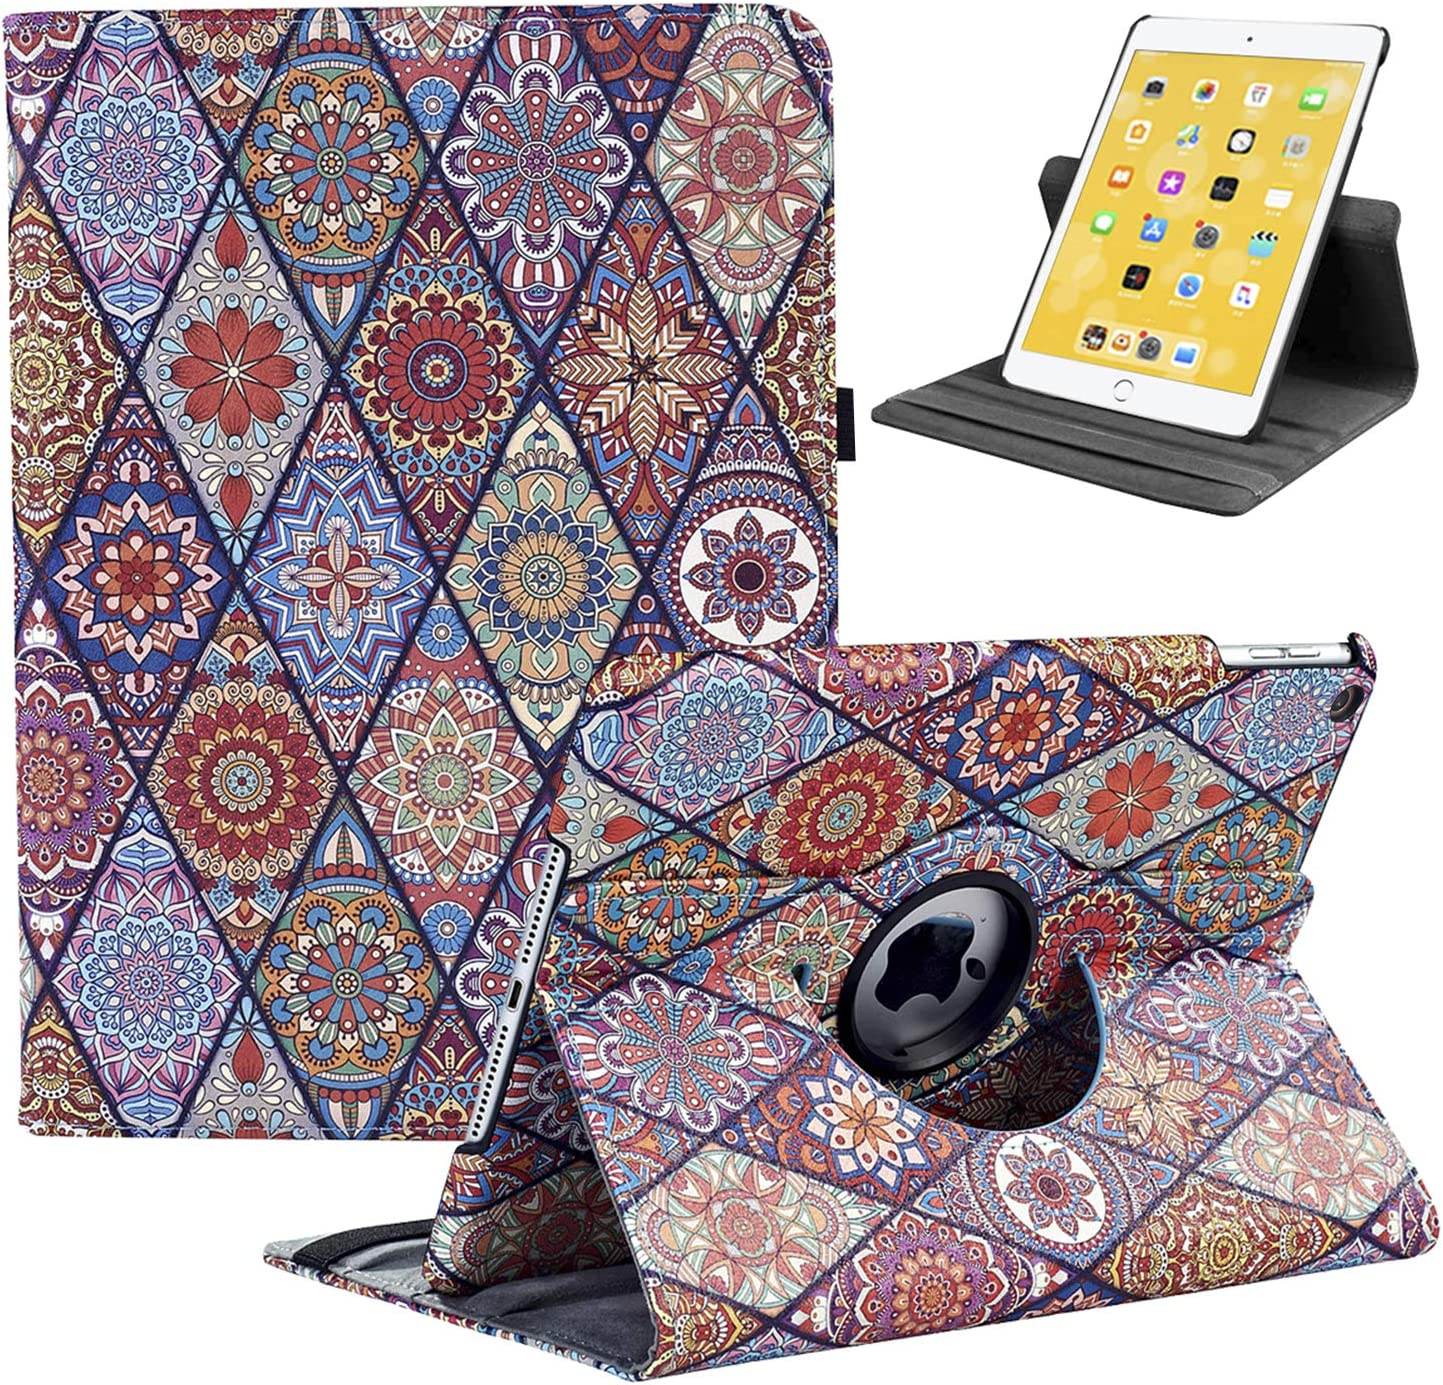 "LRCXL New iPad 8th Generation Case 2020, iPad 7th Generation Case 2019 - 360 Degree Rotating Stand Protective Cover with Auto Sleep Wake for Apple iPad 10.2""(Polygon Pattern)"